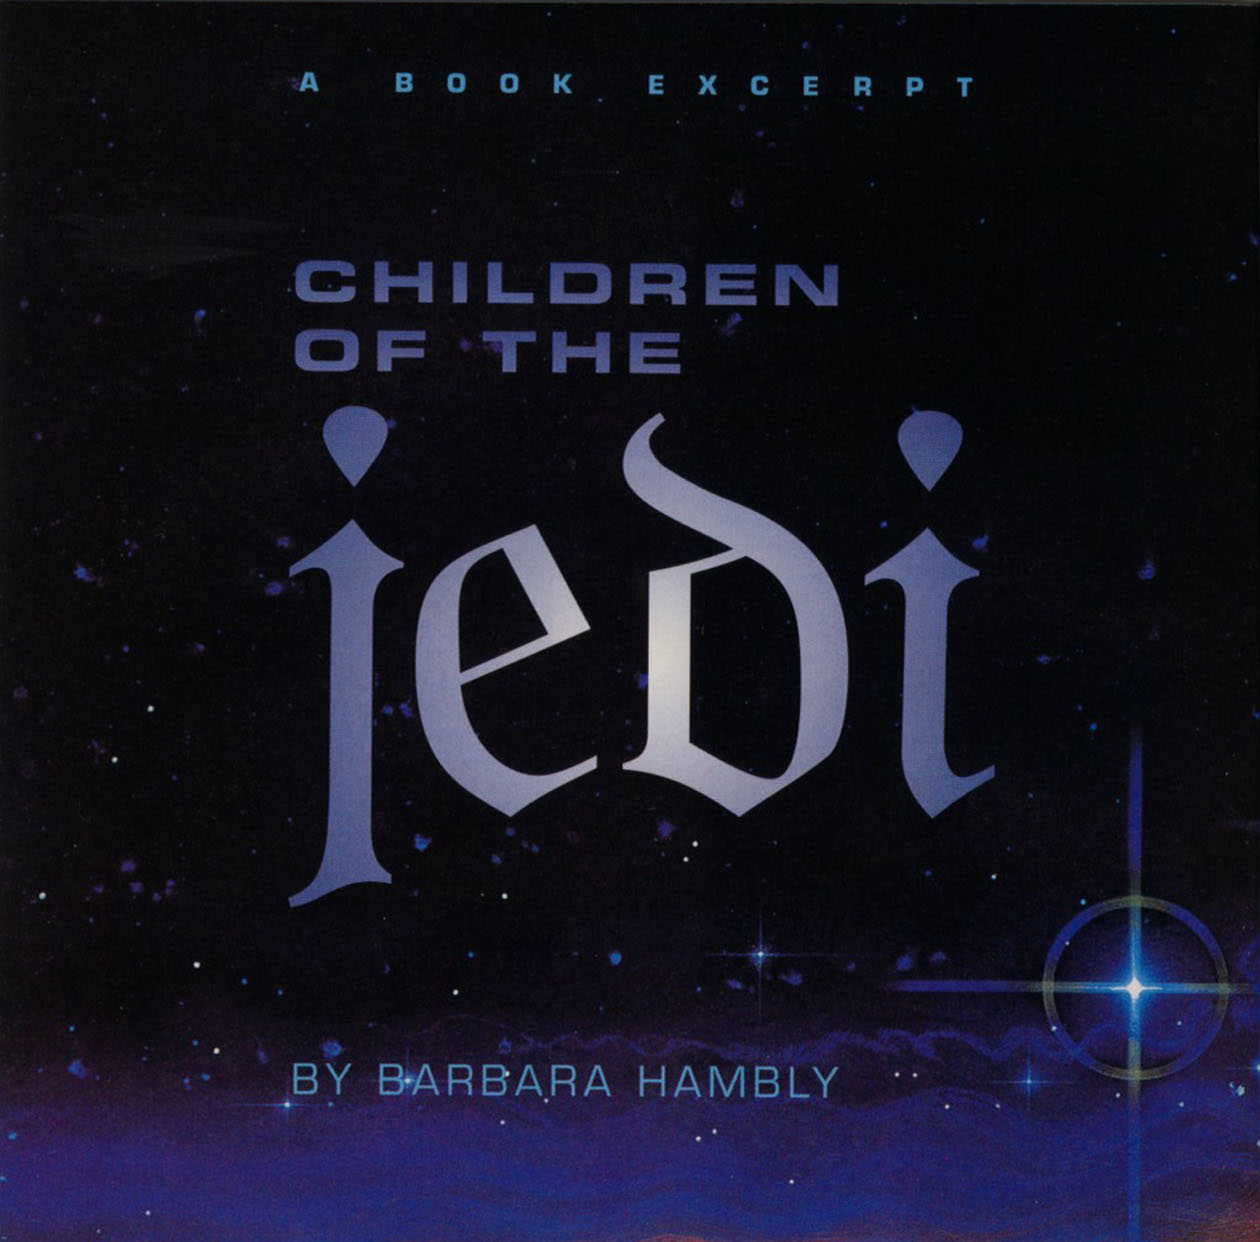 A Book Excerpt: Children of the Jedi